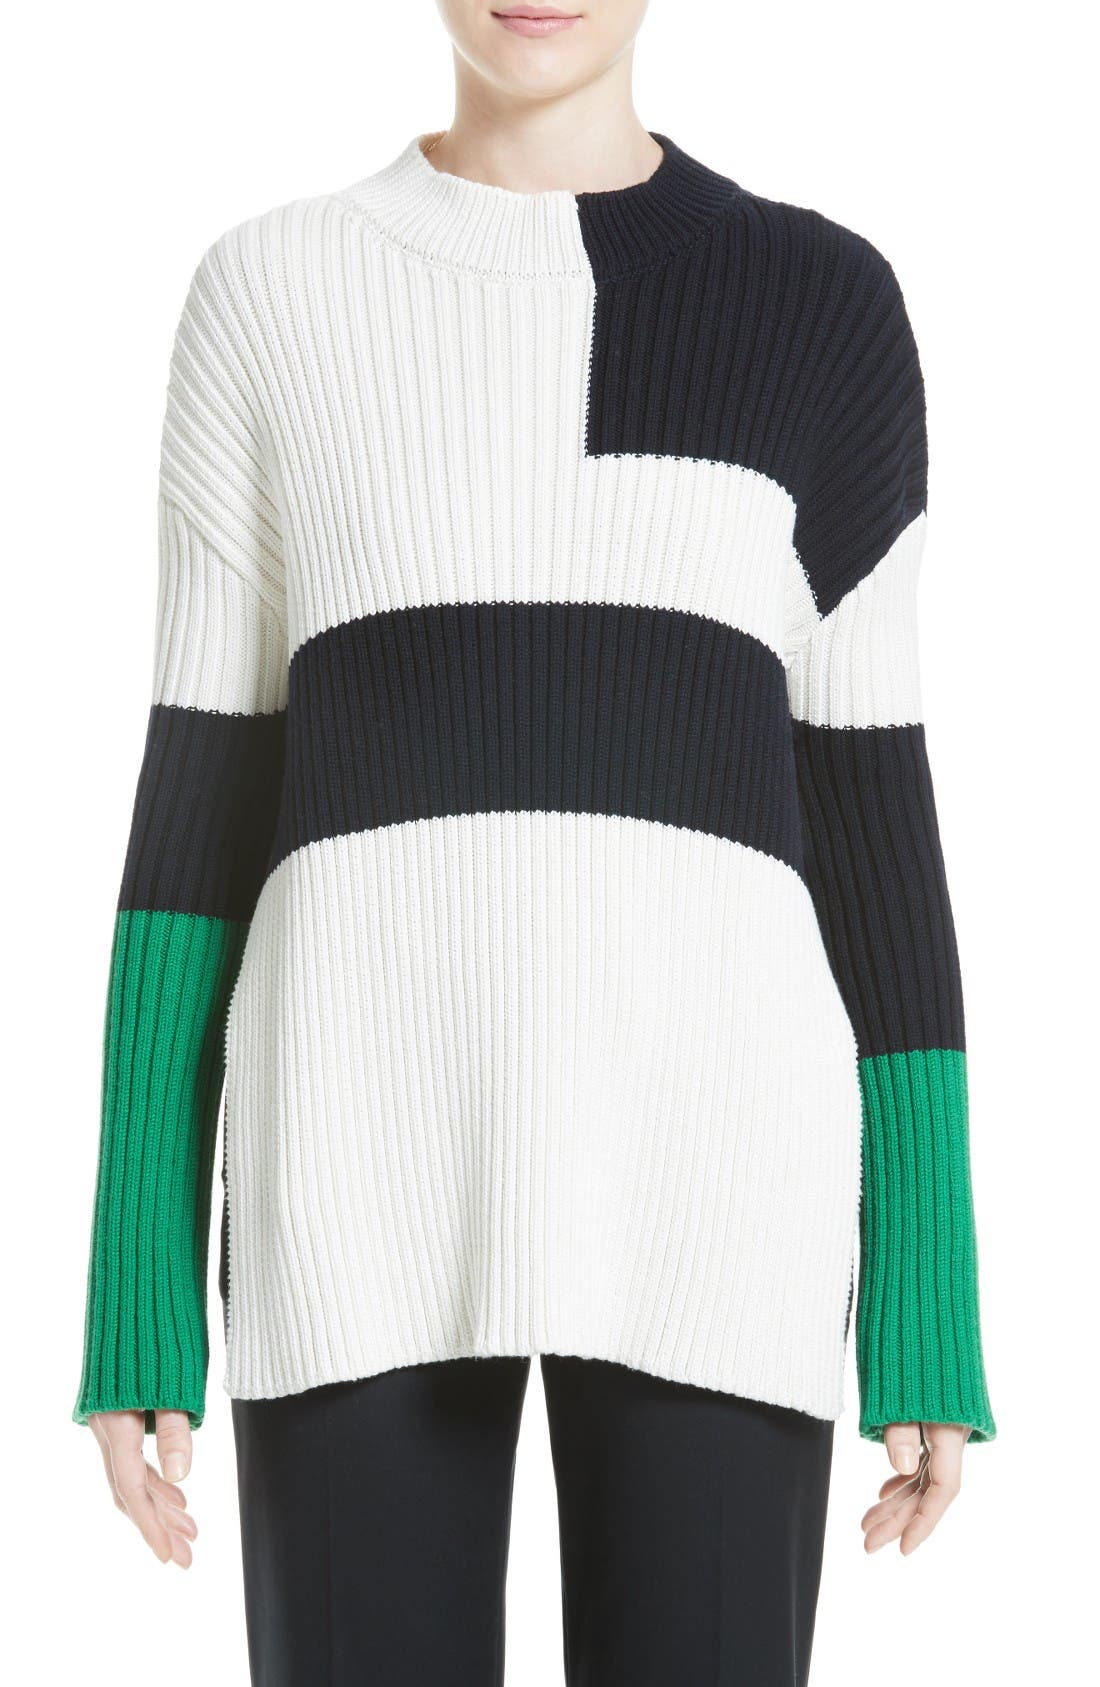 STELLA MCCARTNEY Cotton, Silk & Wool Knit Sweater